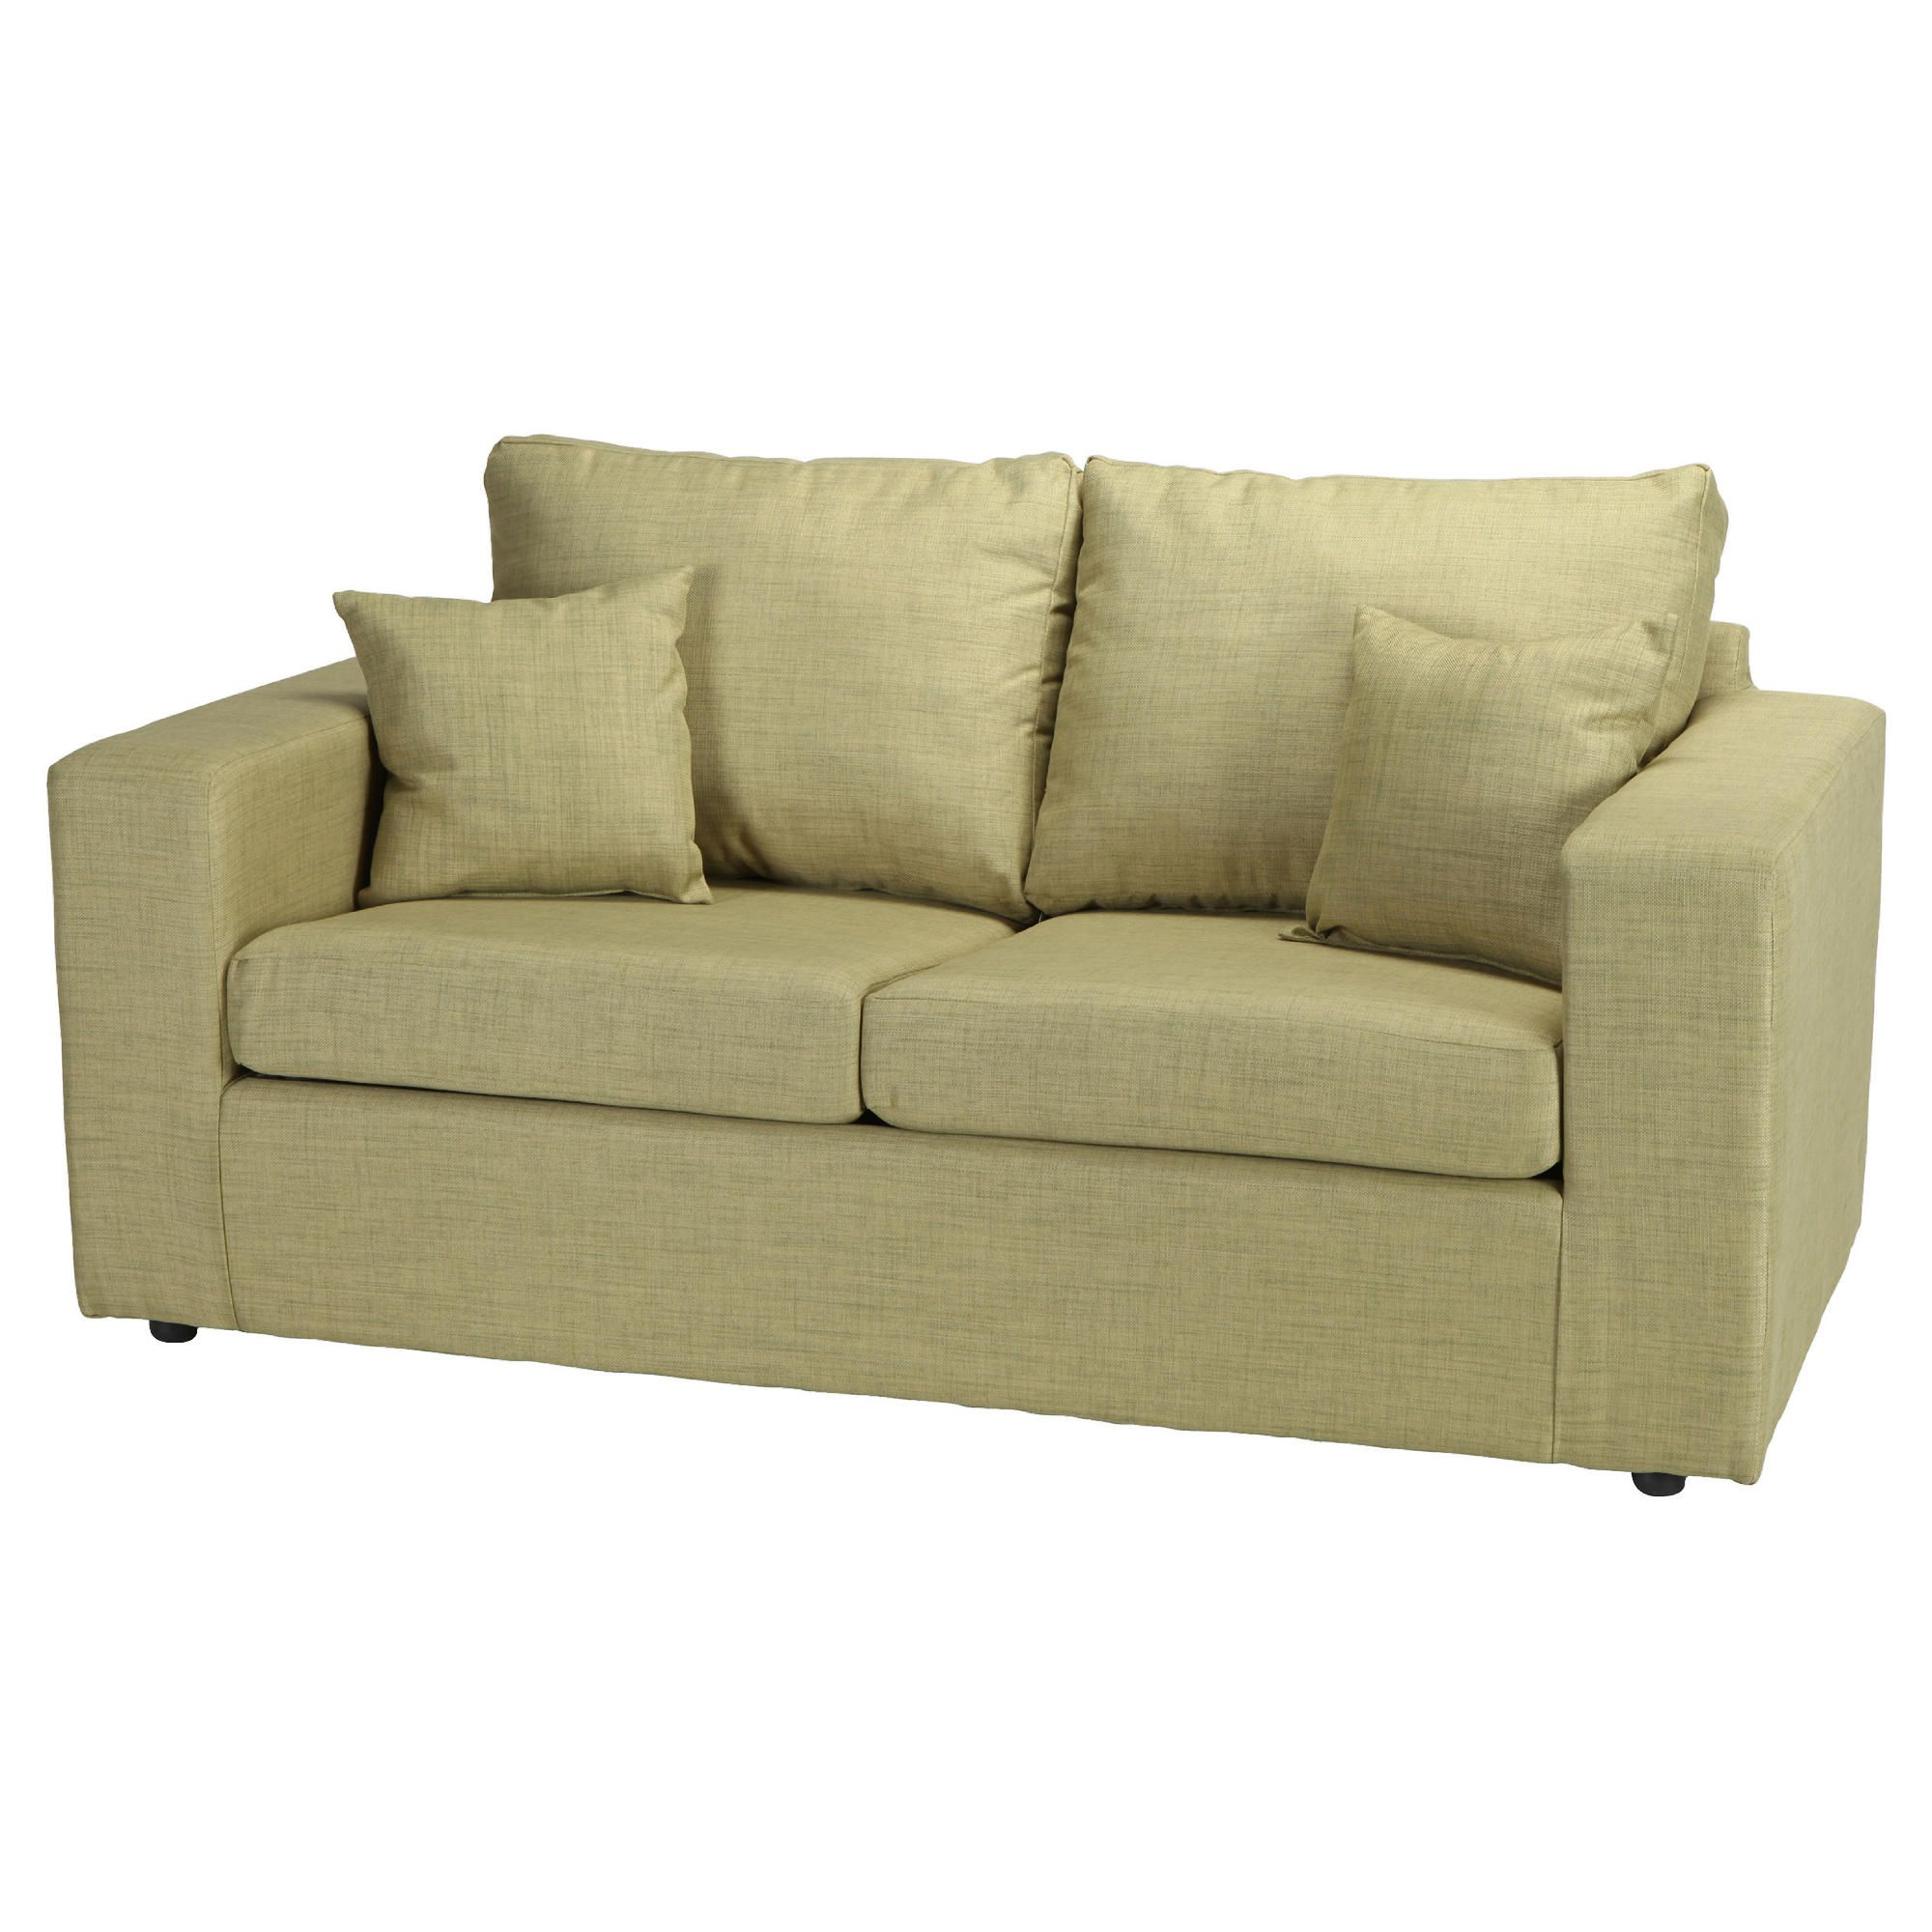 Maison Fabric Sofa Bed Pistachio at Tesco Direct